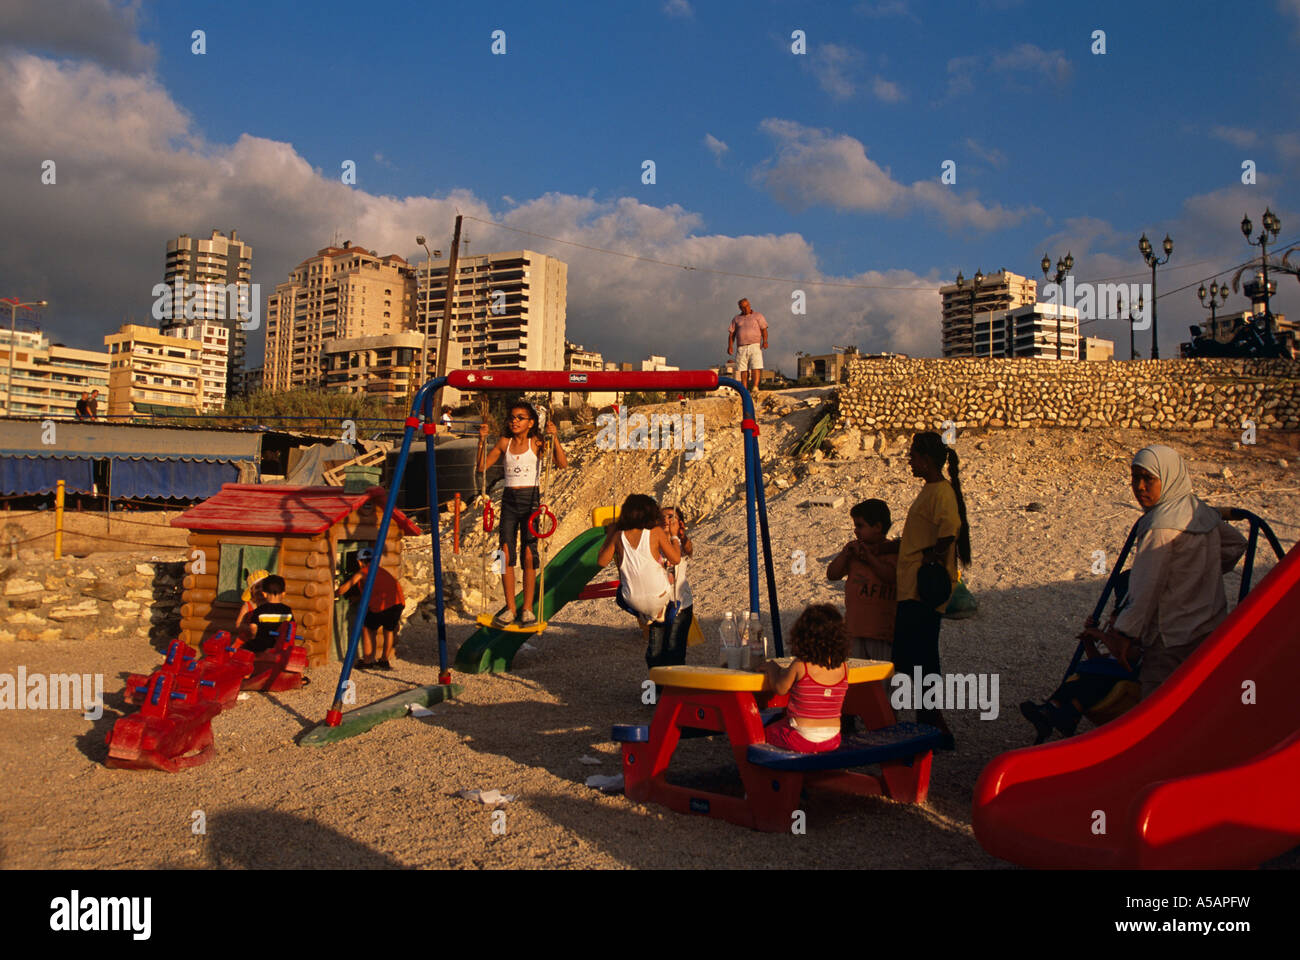 Children at a playground in Beirut Lebanon Stock Photo